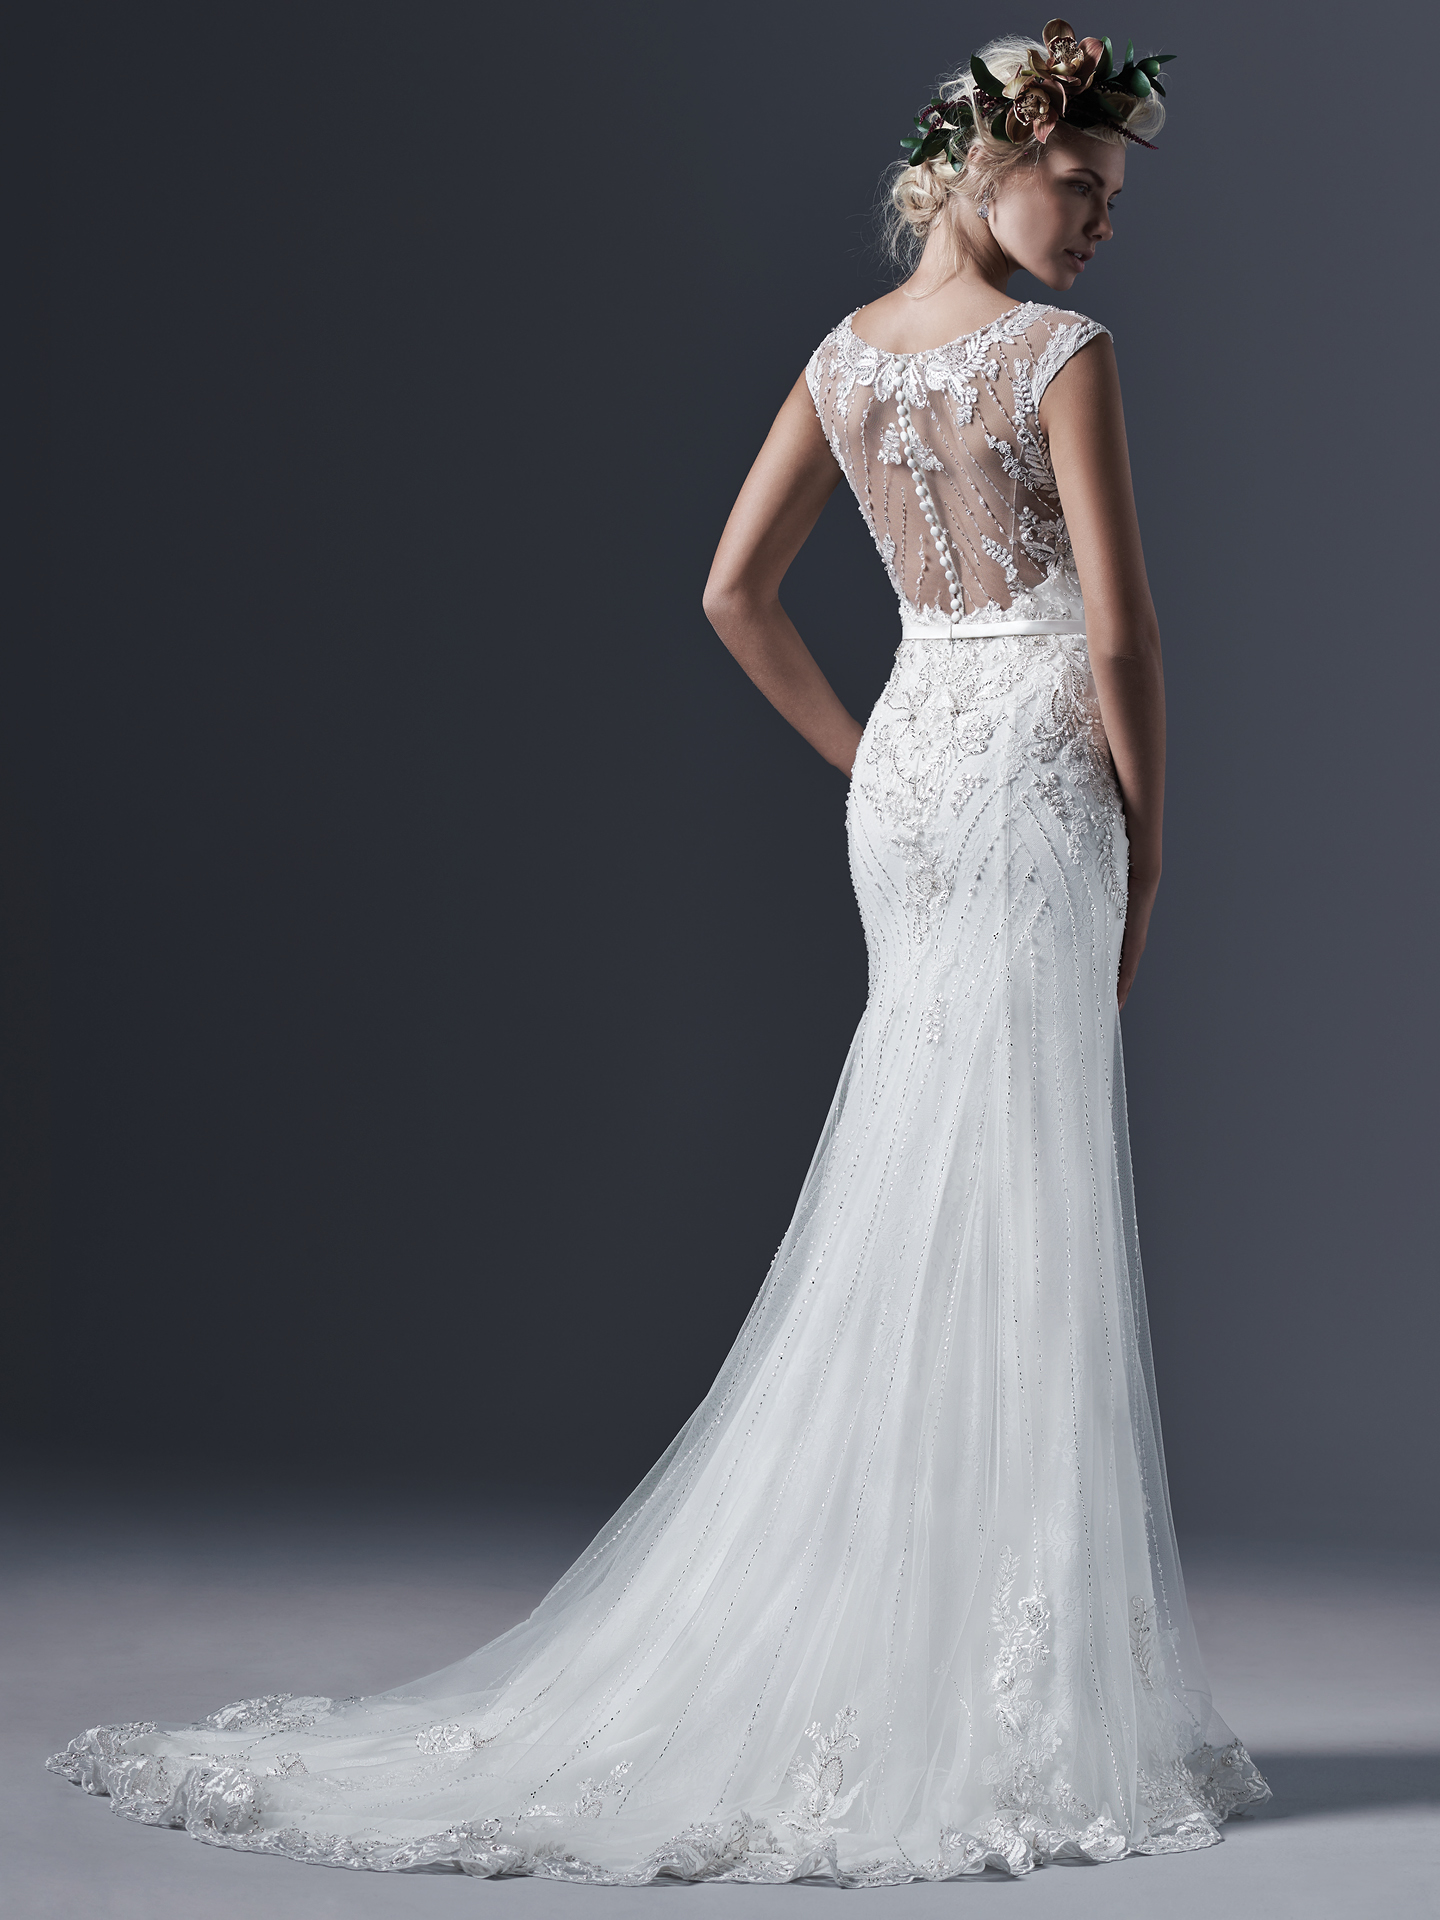 Beckett By Sottero And Midgley Great Gatsby Inspired Wedding Dresses